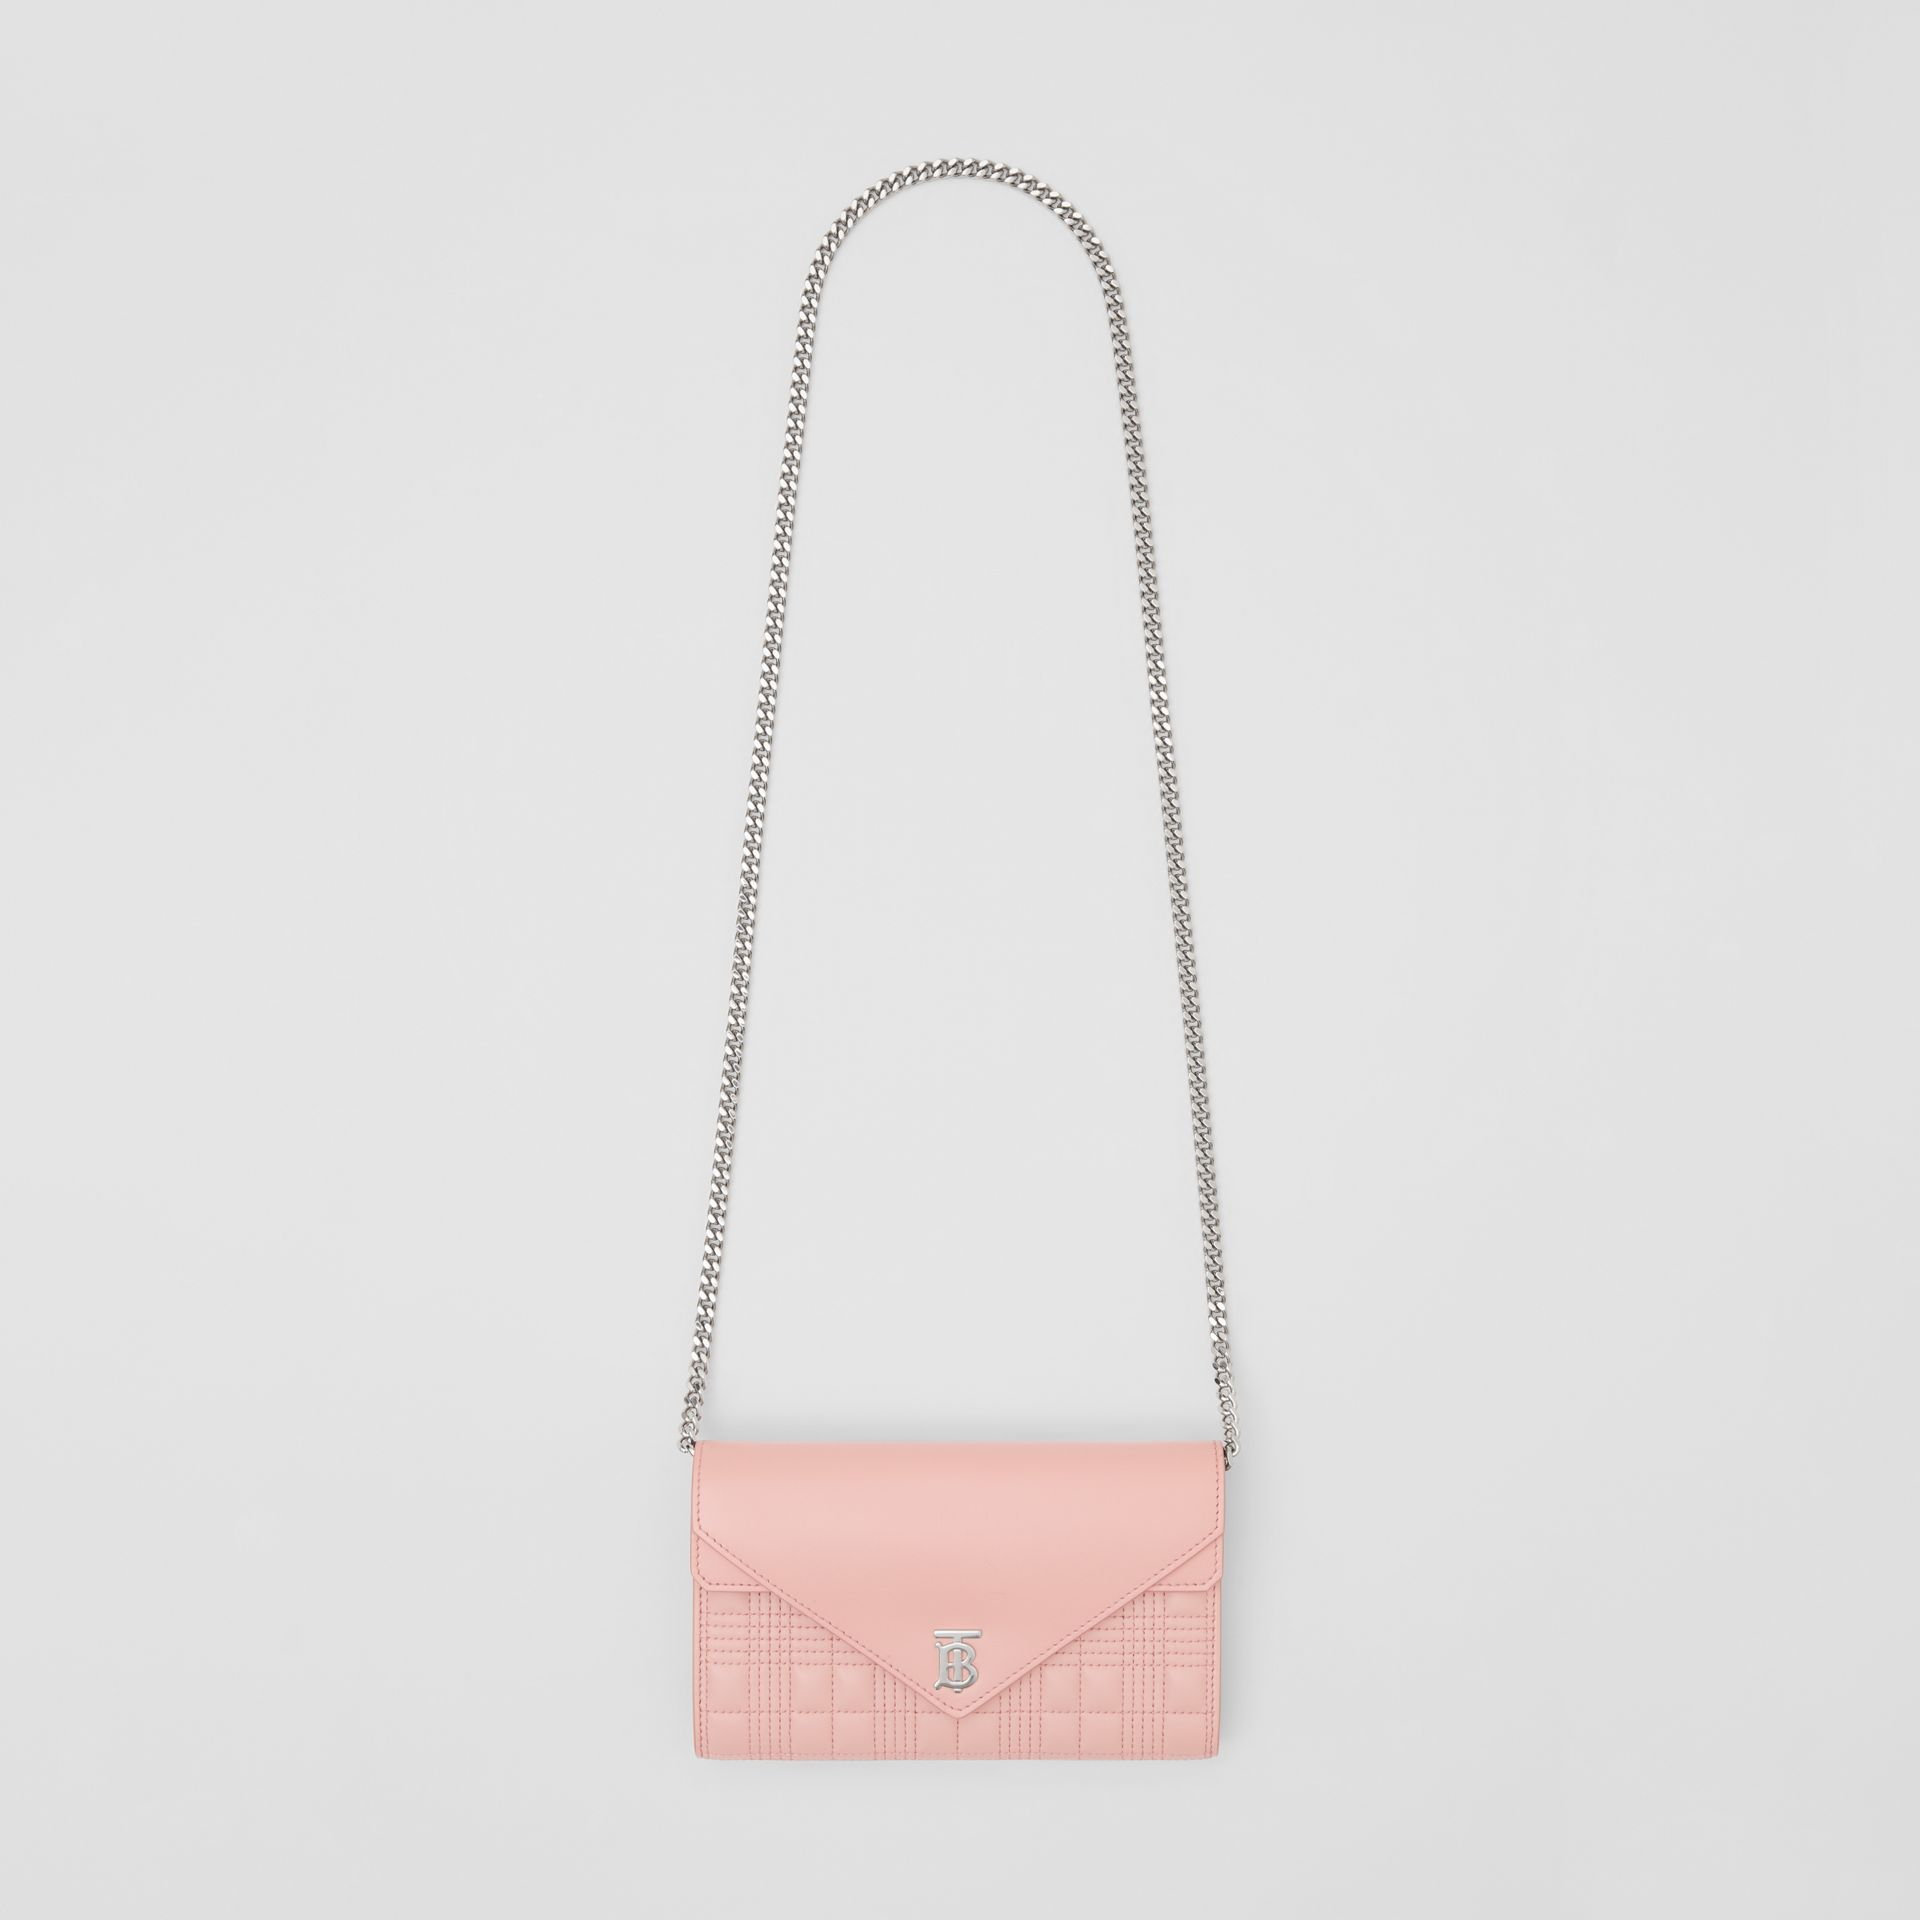 Quilted Lambskin Wallet with Detachable Chain Strap in Blush Pink - Women | Burberry - gallery image 3